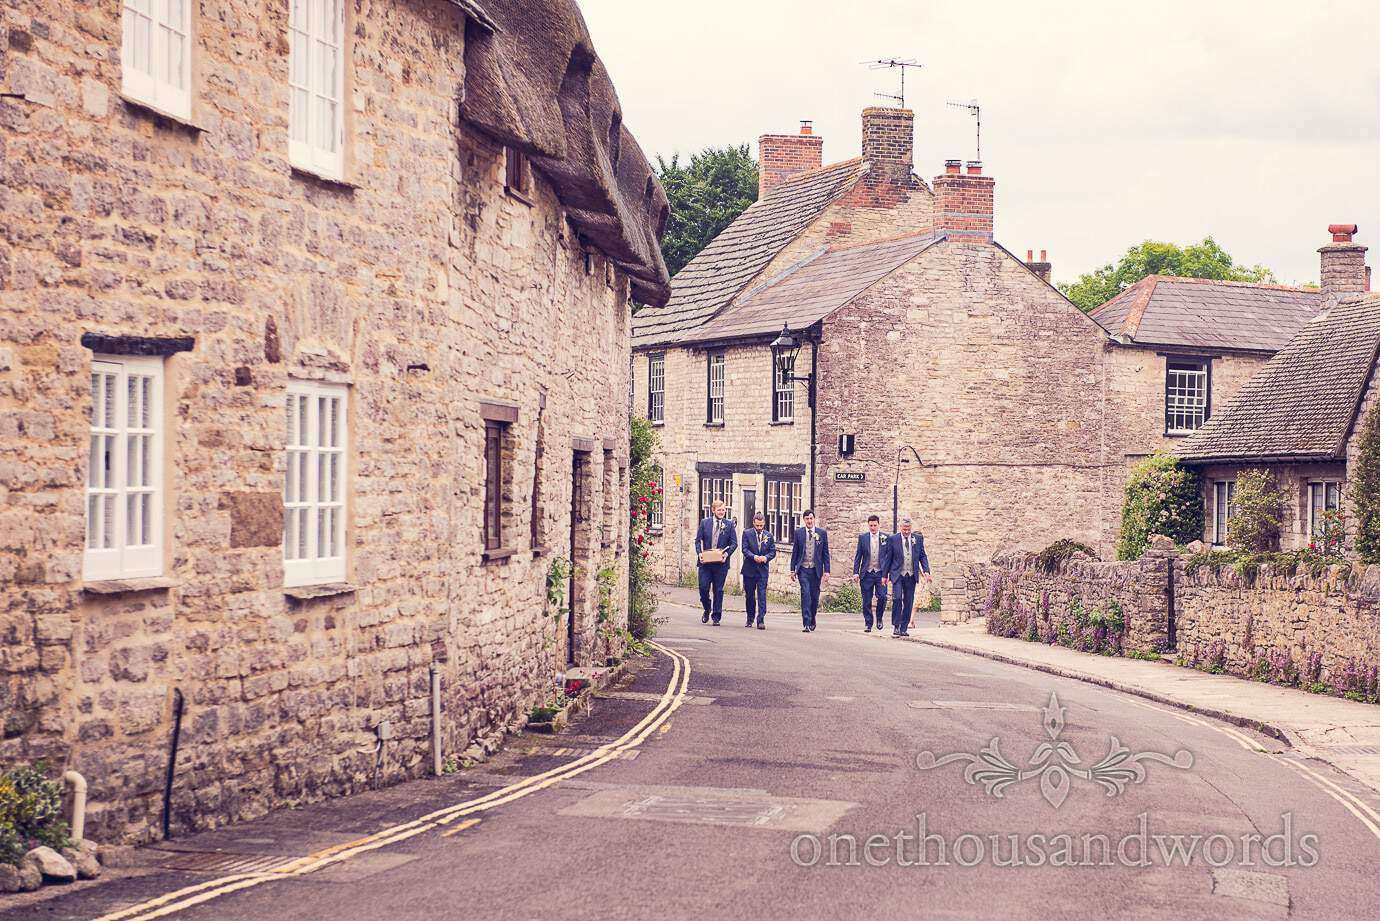 Groomsmen in blue wedding suits walk through Dorset countryside village